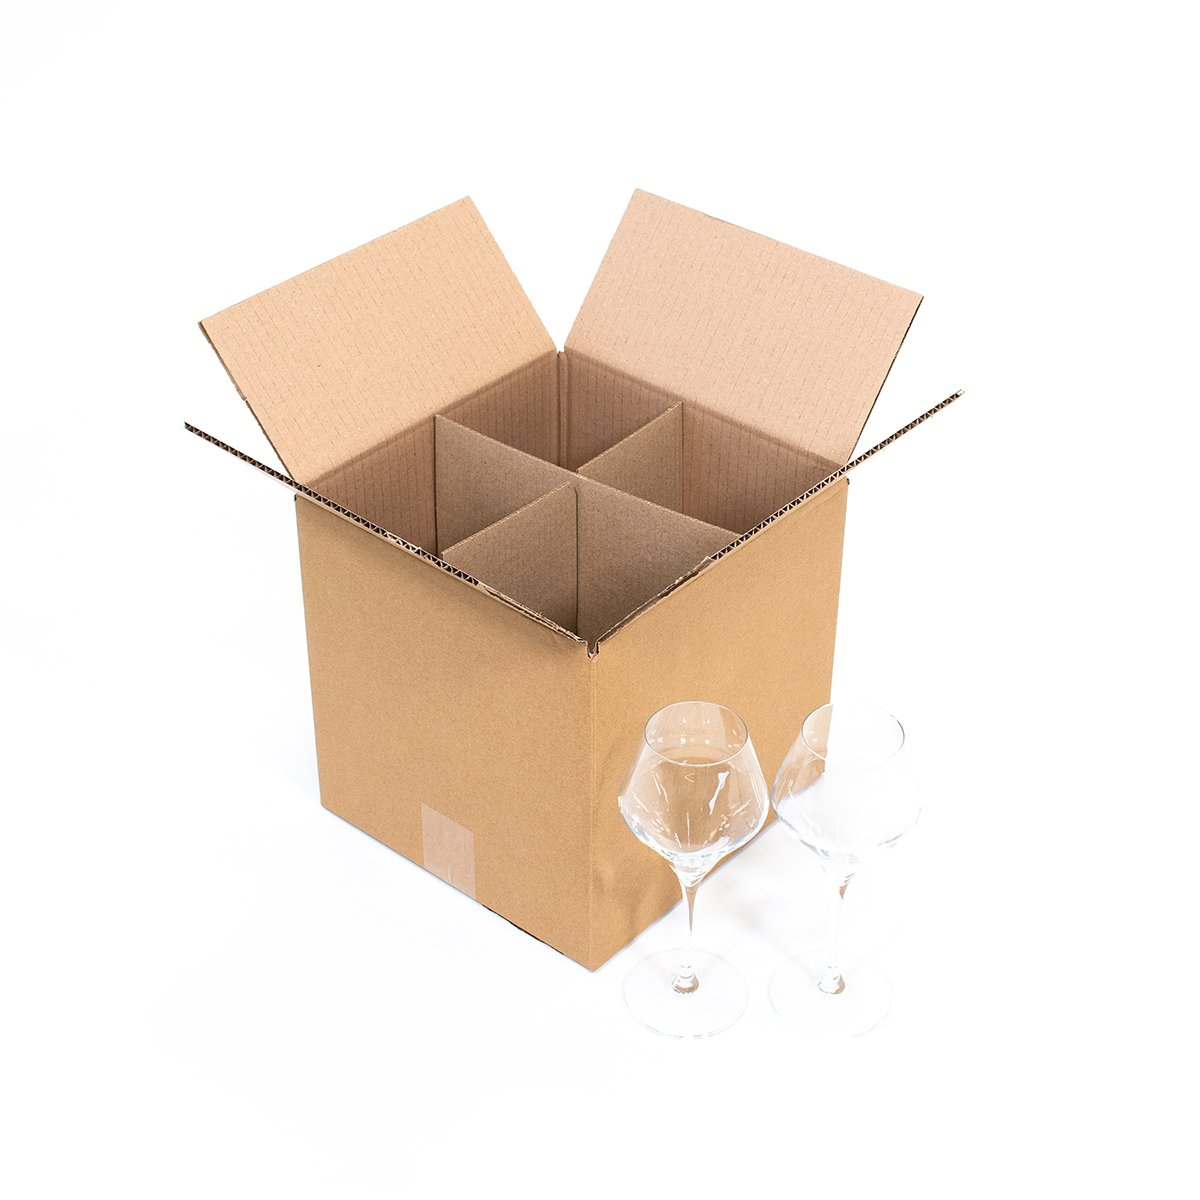 carton grands verres 25x25x25cm carton market. Black Bedroom Furniture Sets. Home Design Ideas